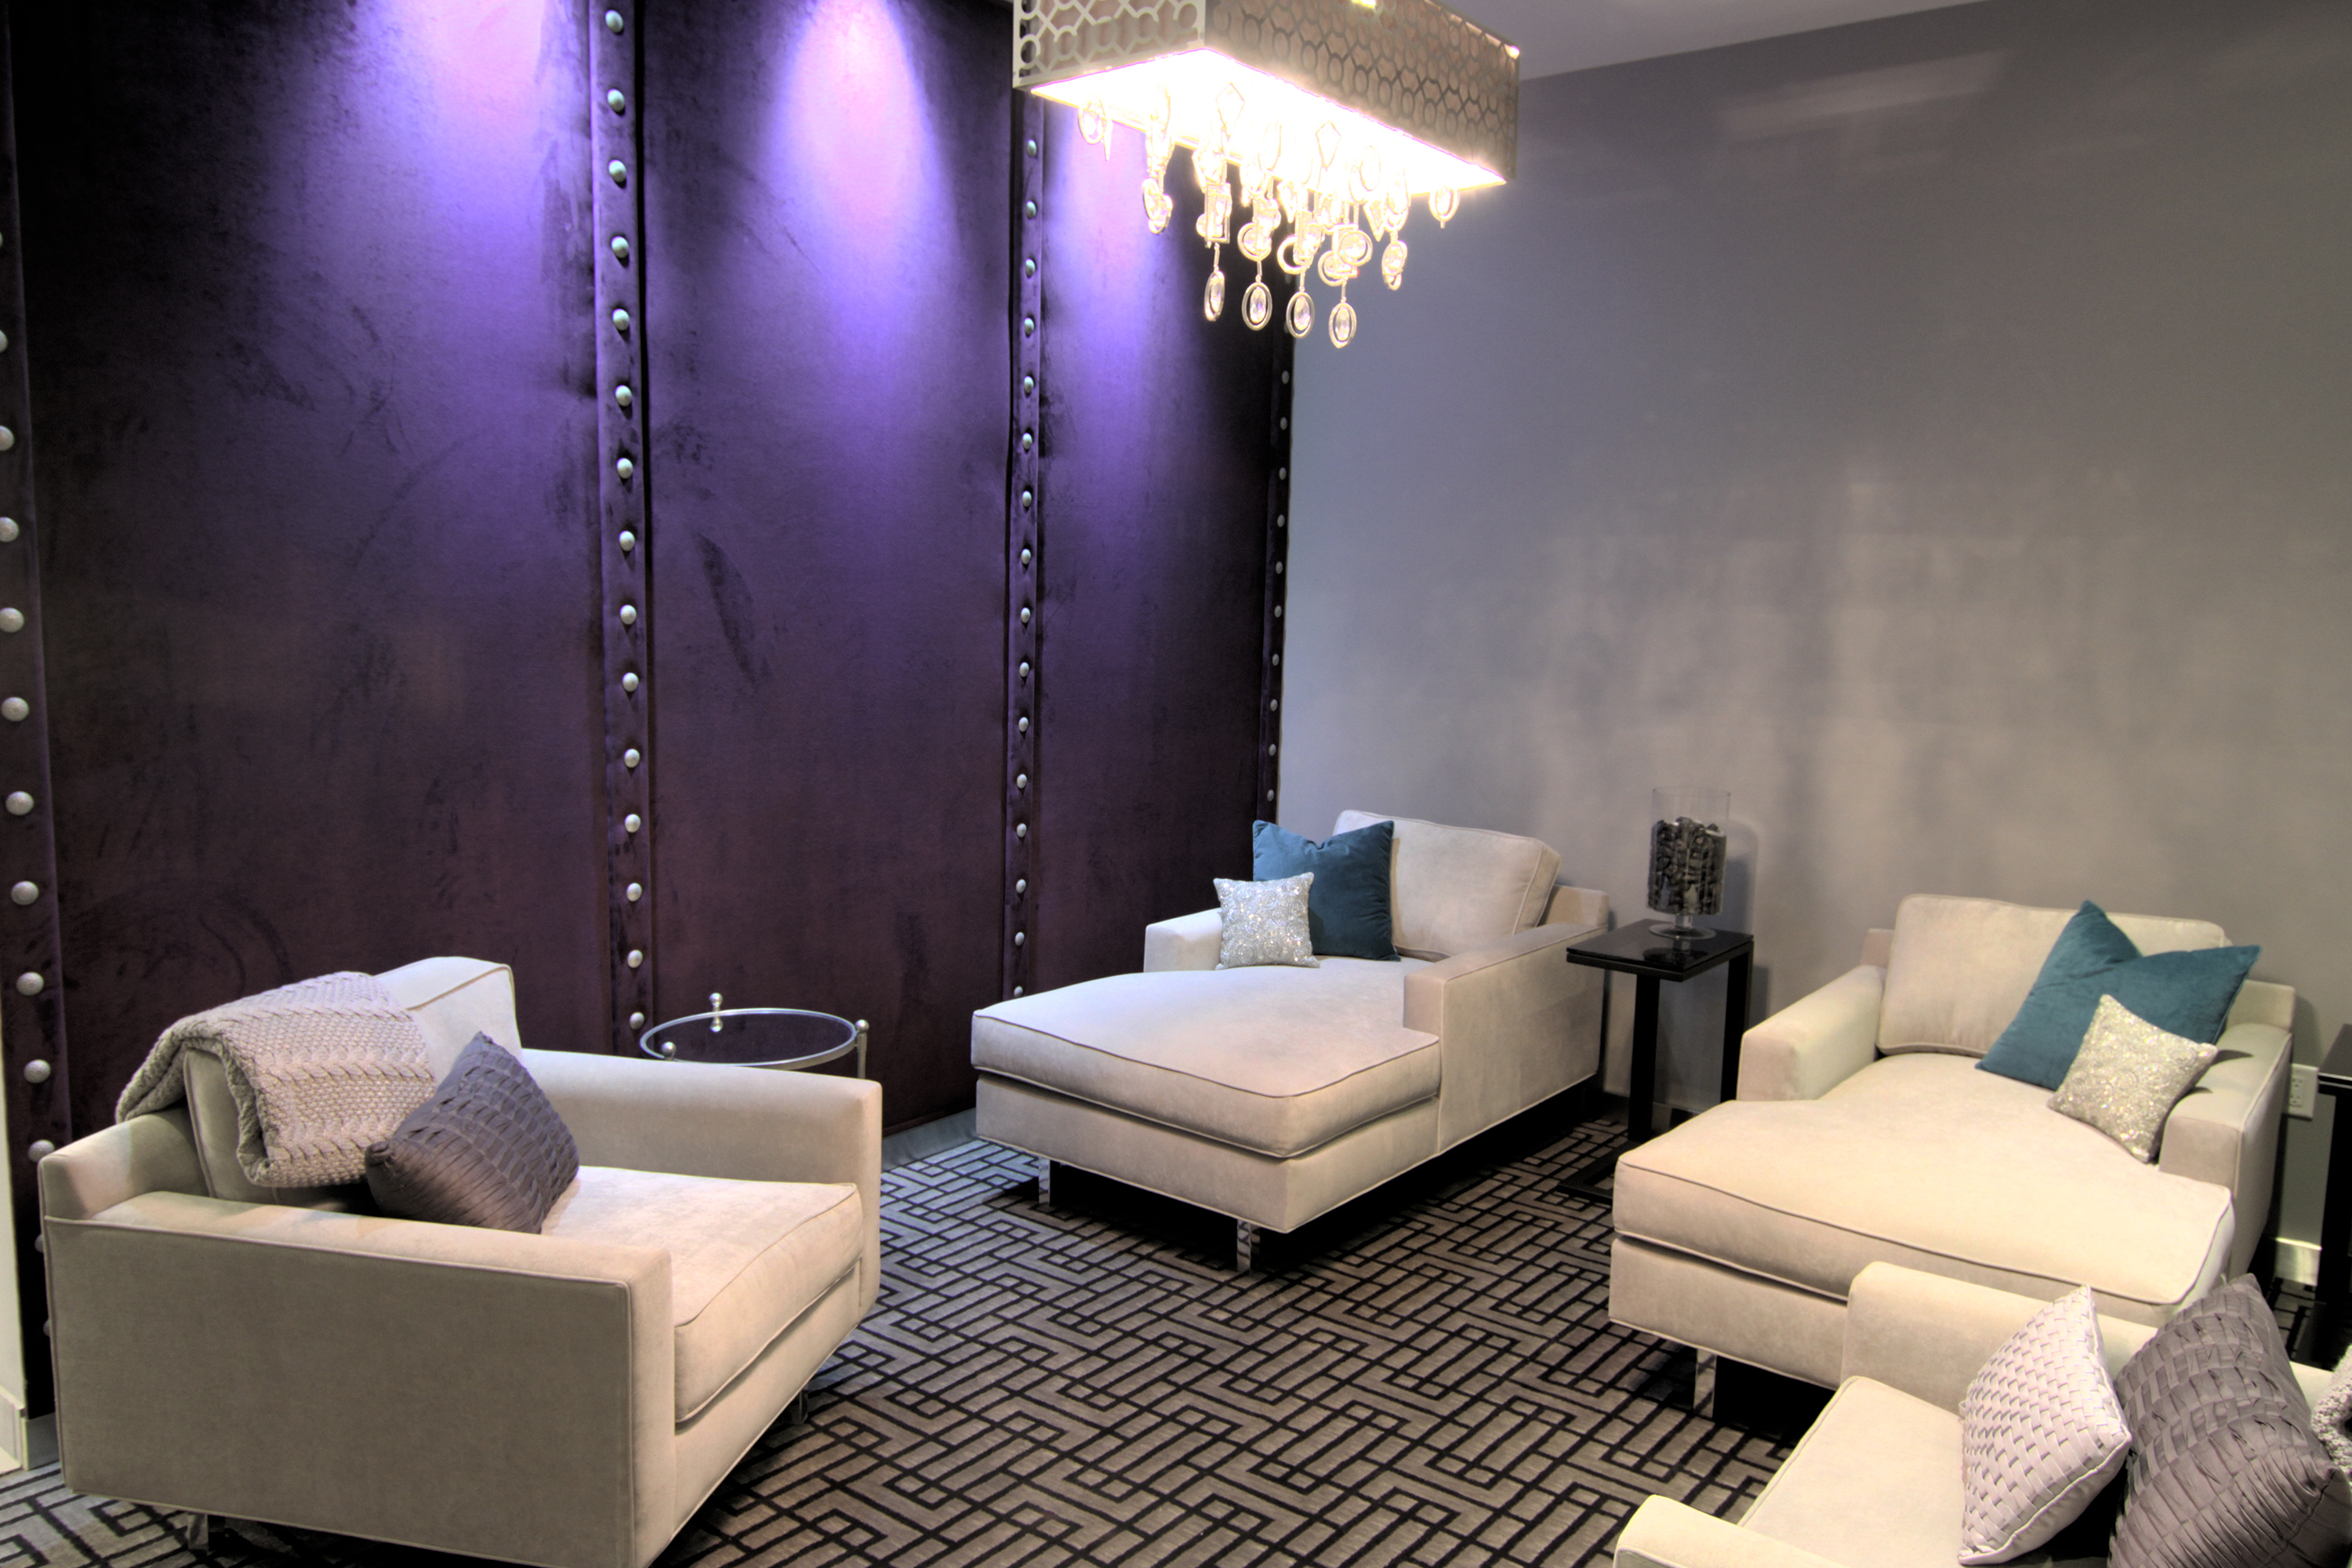 Beauty salon haircuts manicures facials lake charles for W salon and spa